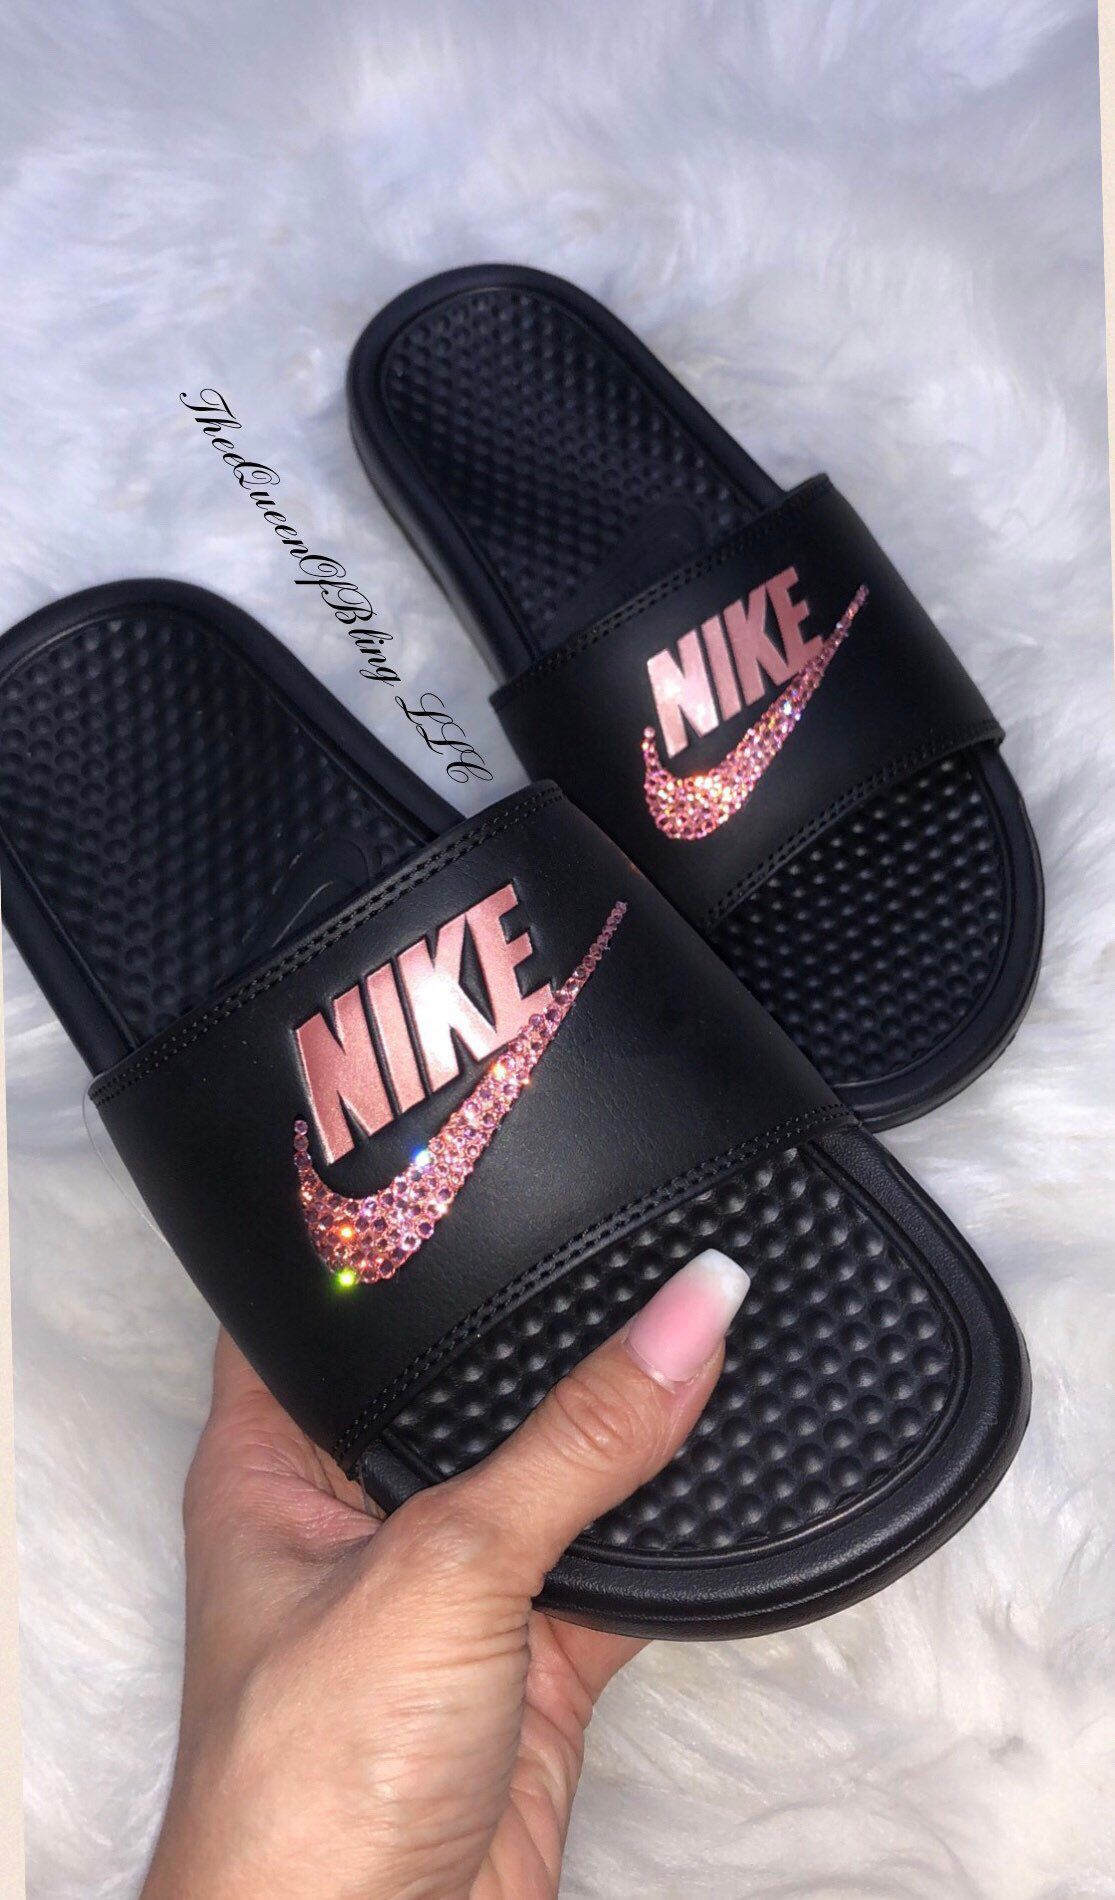 Nike Benassi Slides, crystalized nike slides, swarvoski nike slides 3